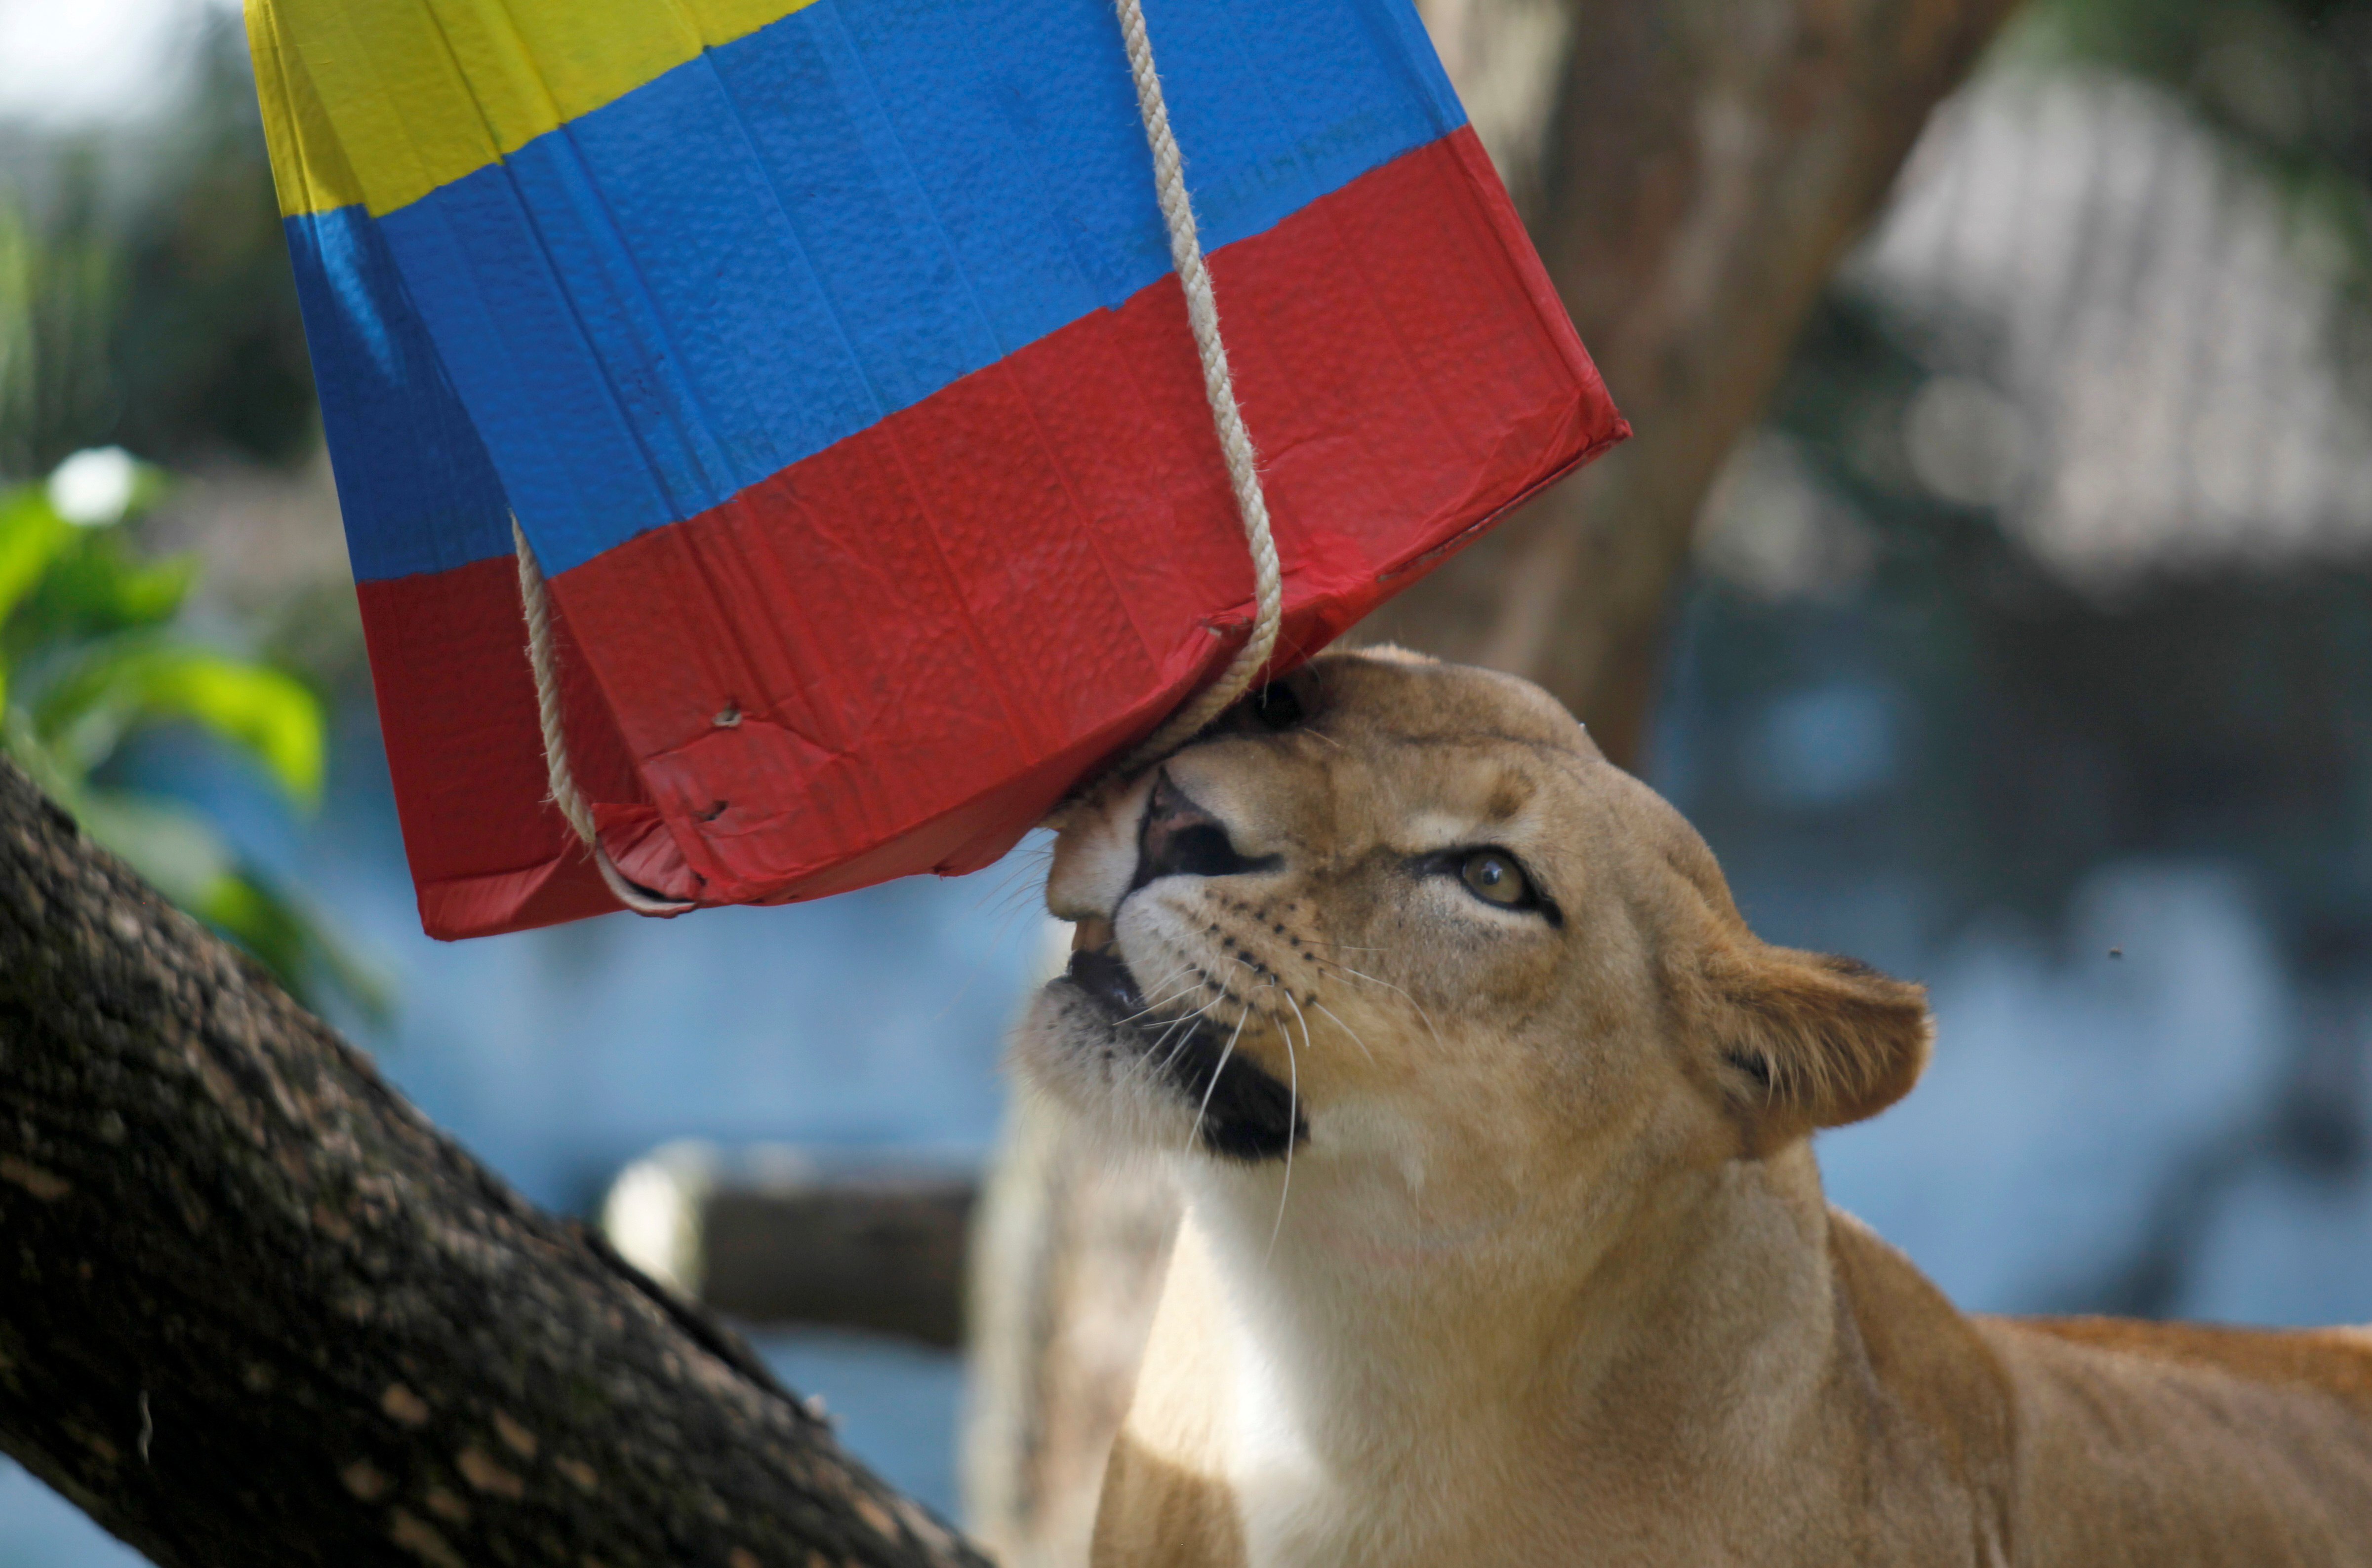 Lioness Valentina is used at Medellin zoo in Colombia, in an attempt to predict the result of the upcoming group H 2018 FIFA World Cup match between Colombia and Japan held in Russia, June 15, 2018. REUTERS/Fredy Builes - RC1CABB4A070